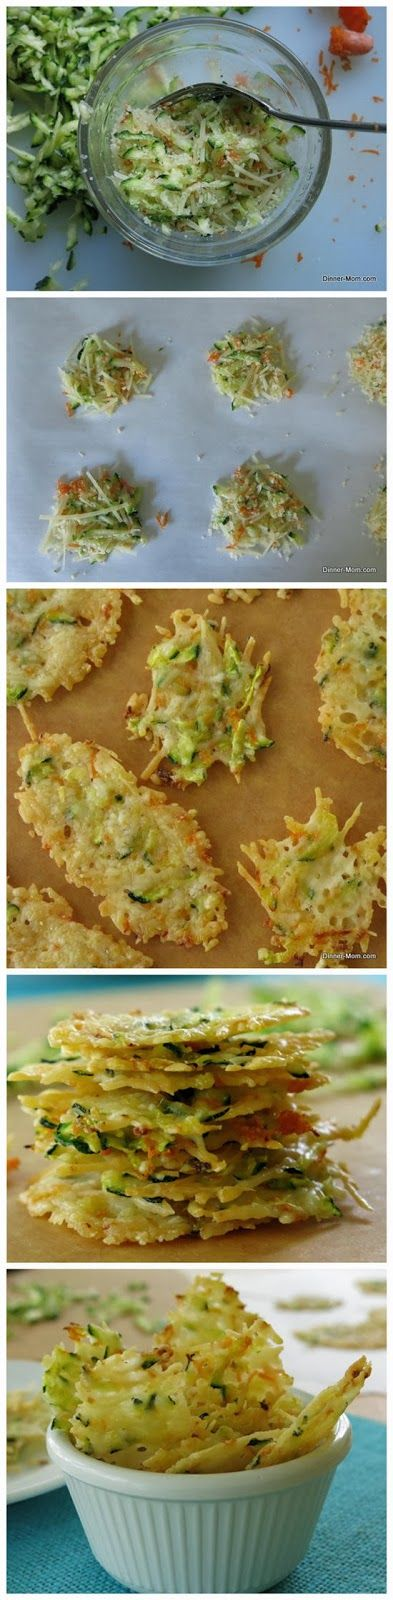 Recipe Best: Parmesan Cheese Crisps Laced with Zucchini & Carrots